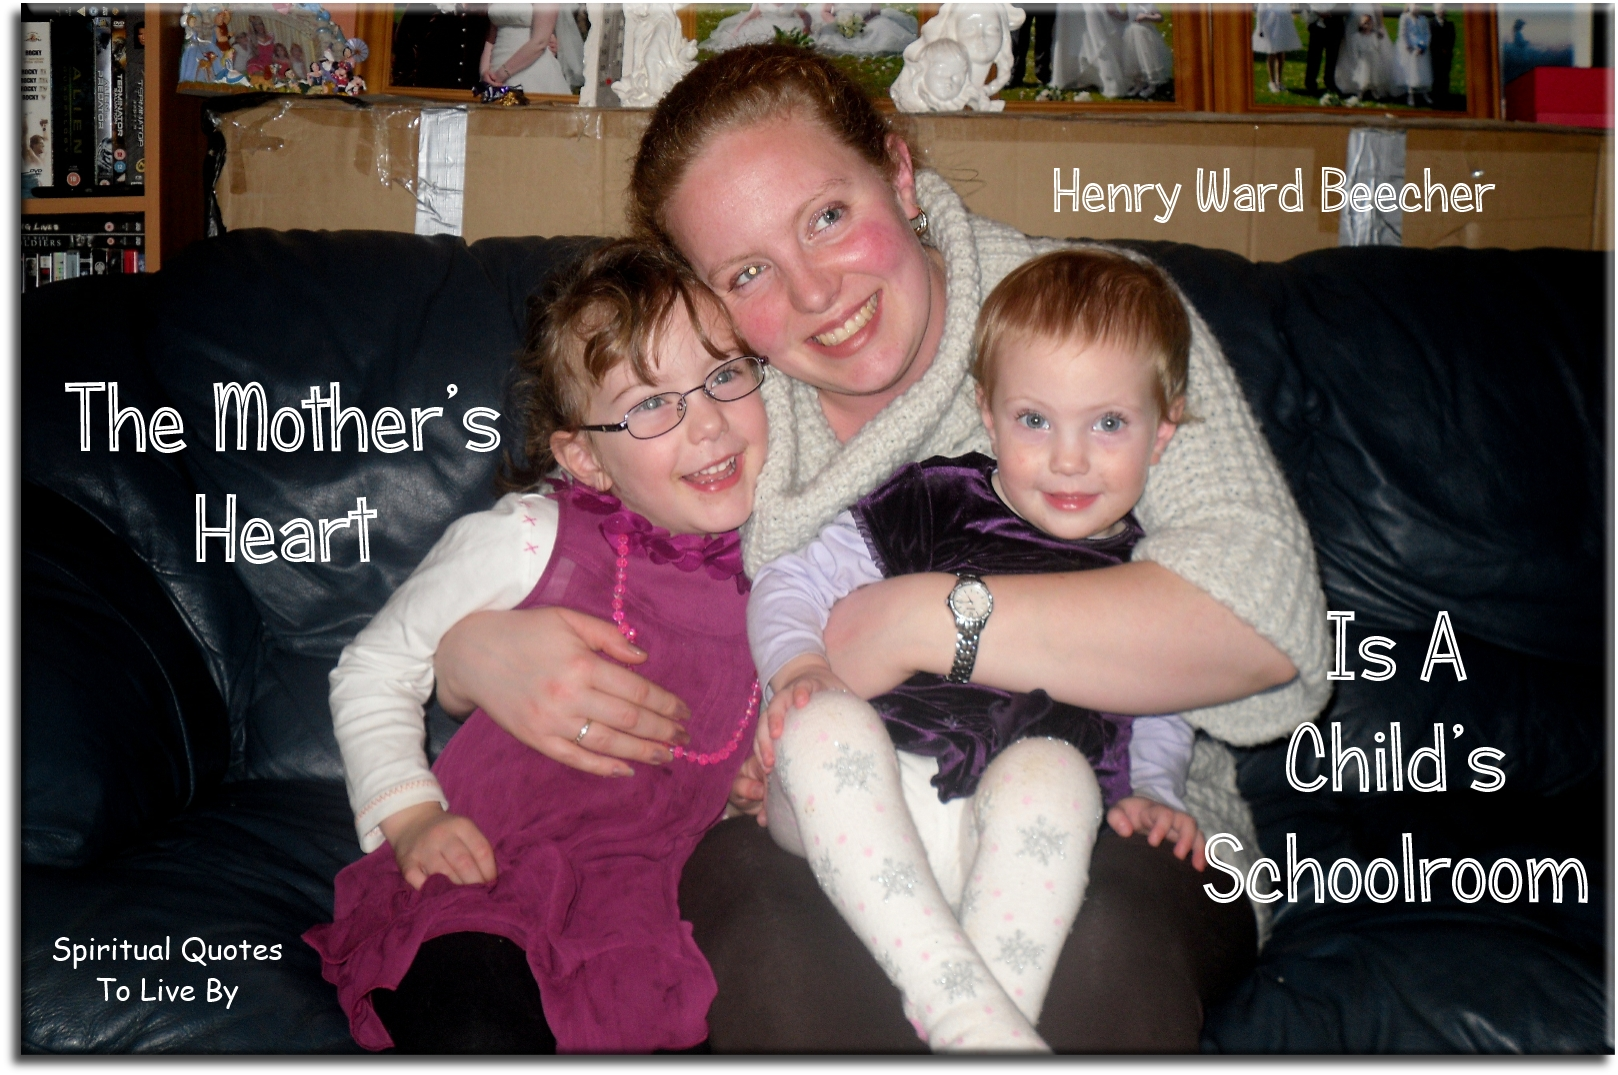 Henry Ward Beecher quote: The mother's heart is a child's schoolroom. - Spiritual Quotes To Live By